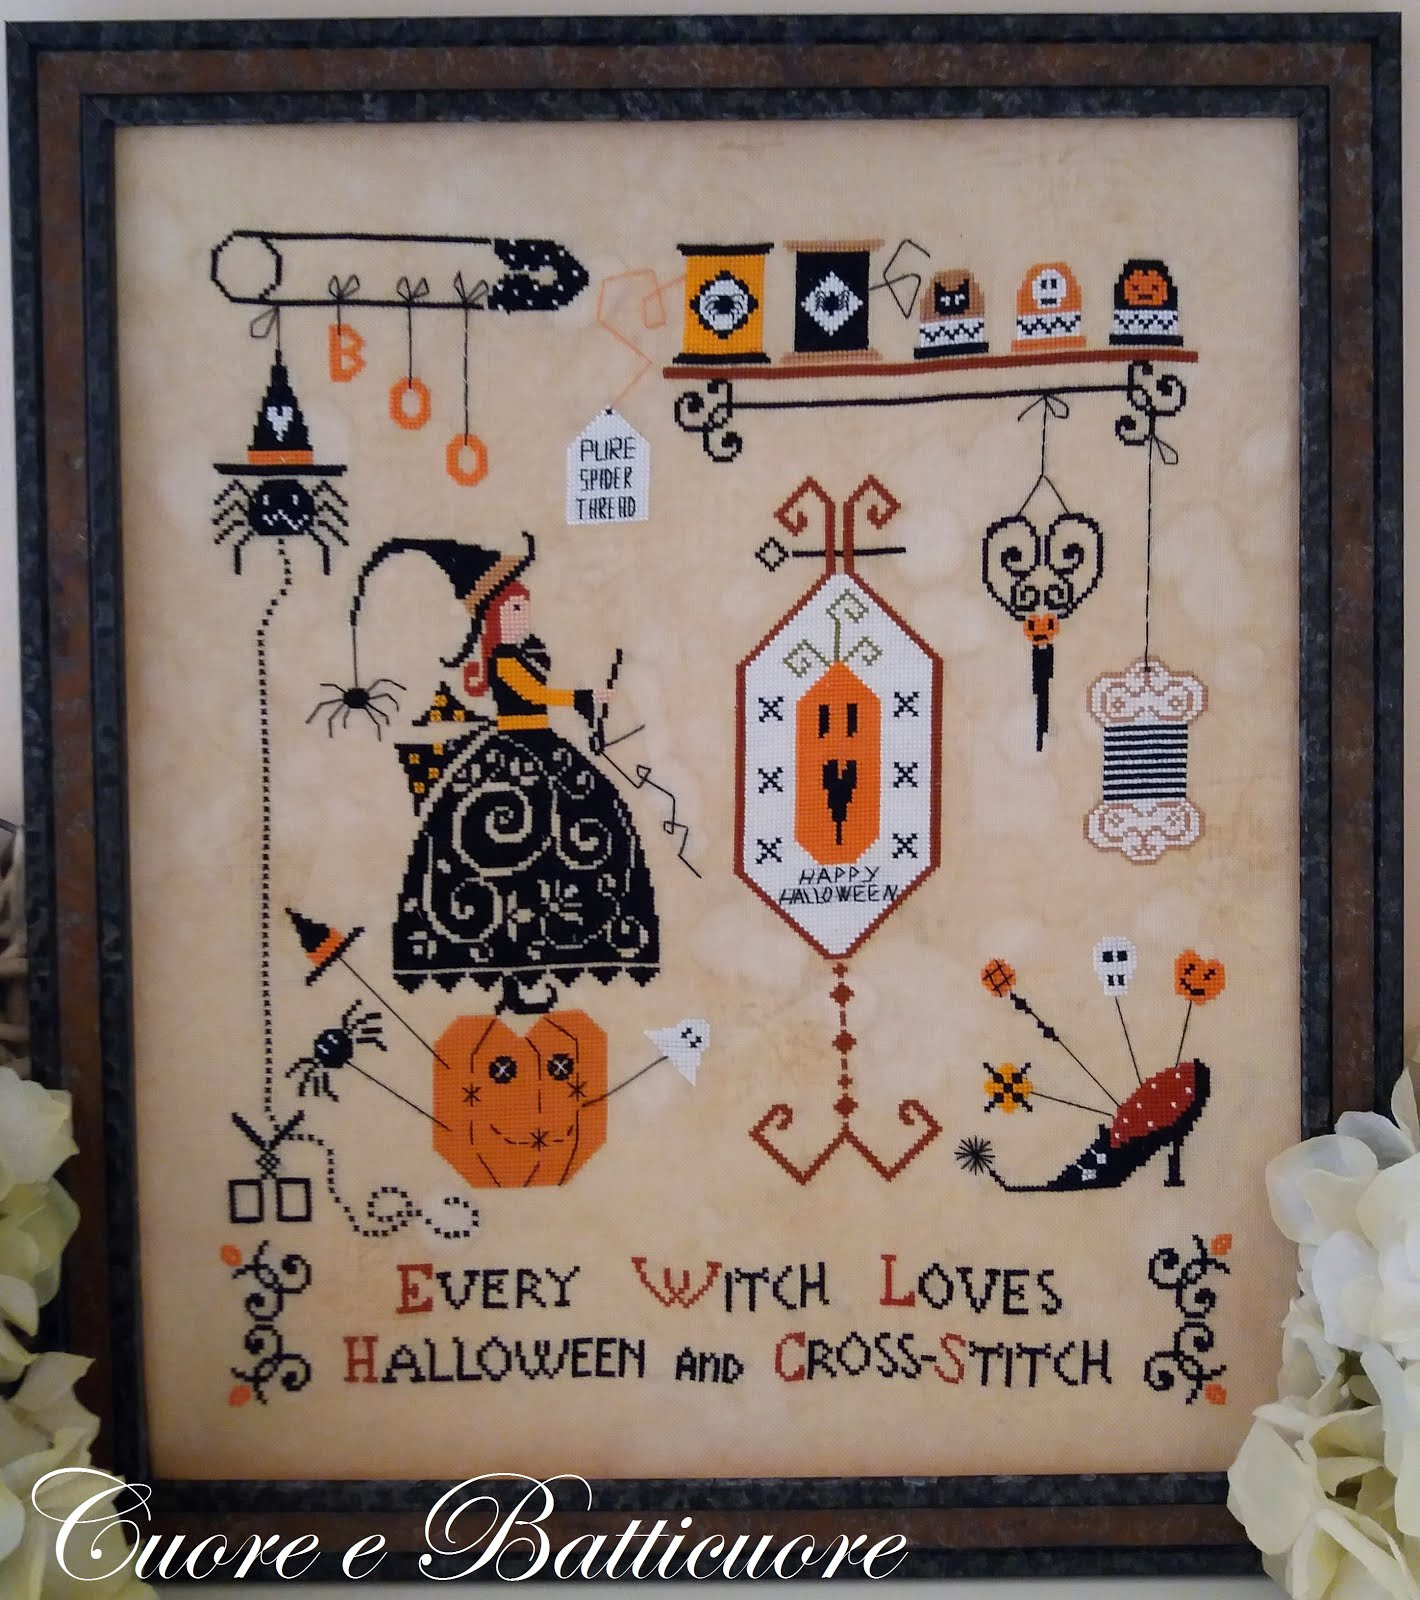 Halloween and Cross-Stitch